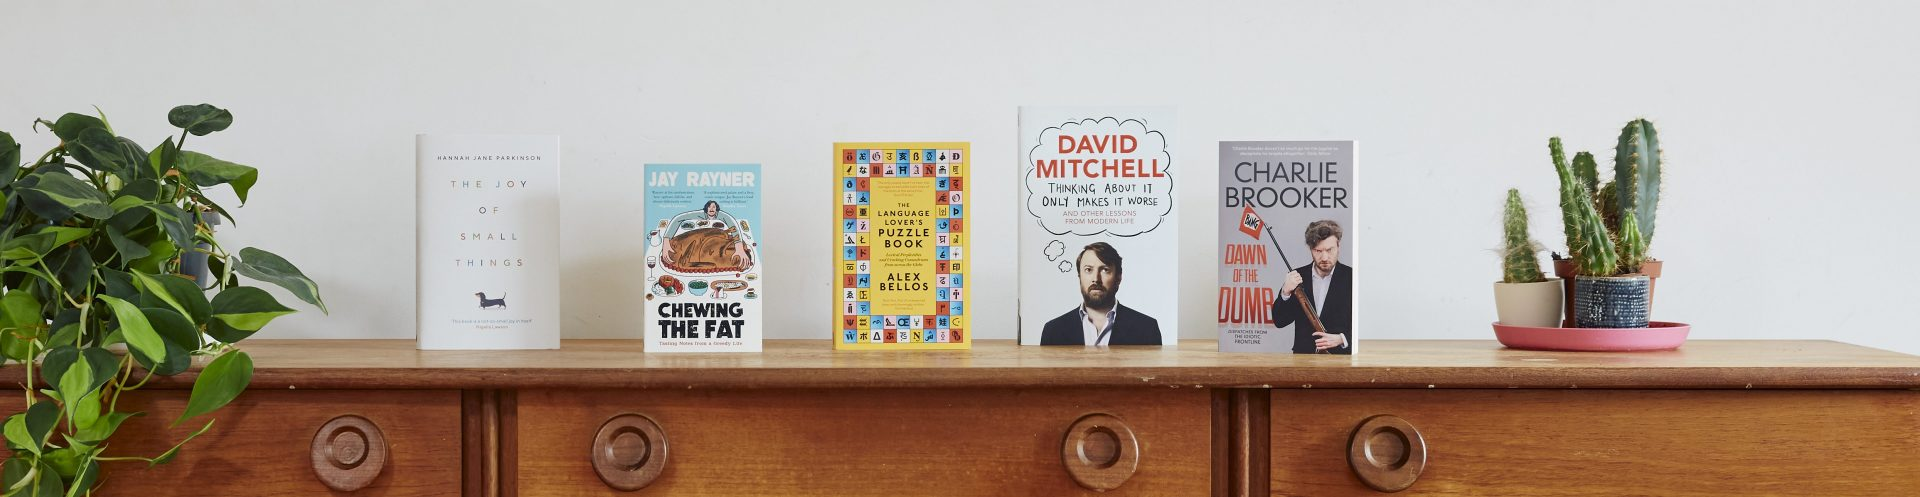 https://www.faber.co.uk/wp-content/uploads/2021/09/Non-fiction-gift-and-humour_credit-Lesley-Lau-e1632500651214-1920x497.jpg